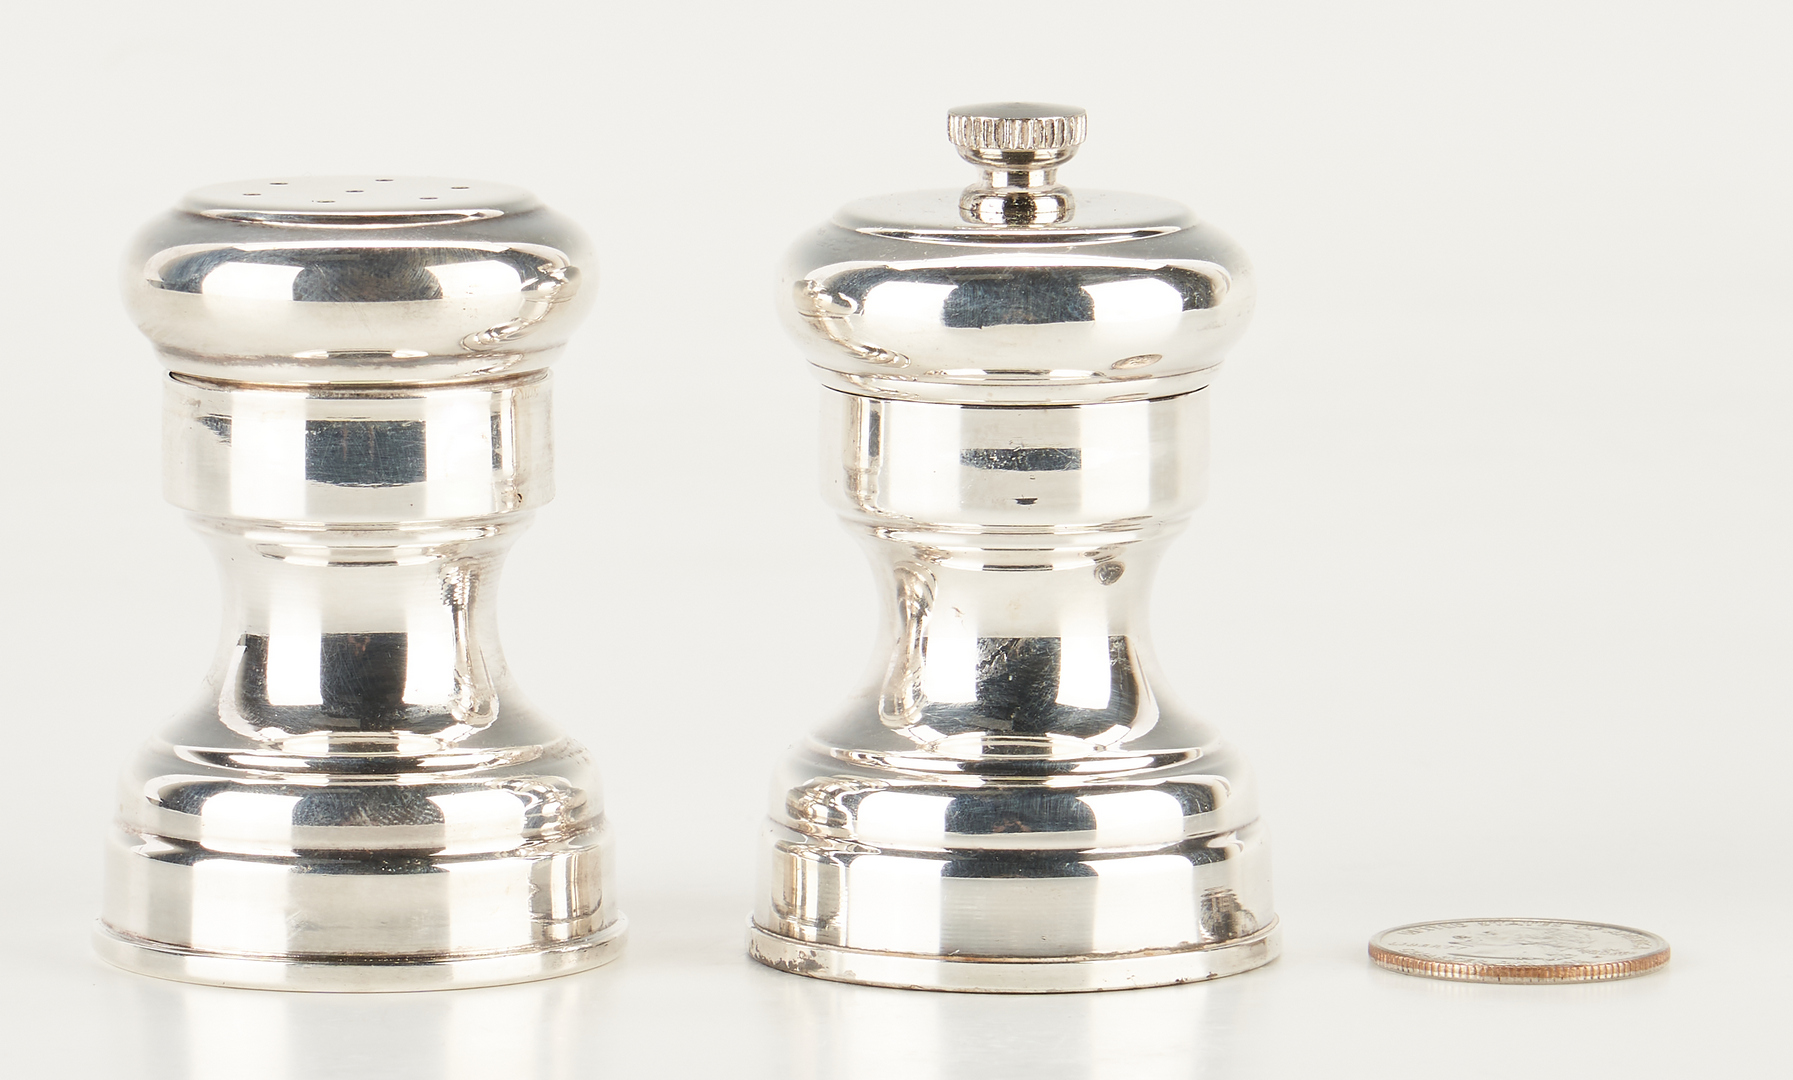 Lot 494: Tiffany & Co. Sterling Silver Salt Shakers & Pepper Grinders, 91 items